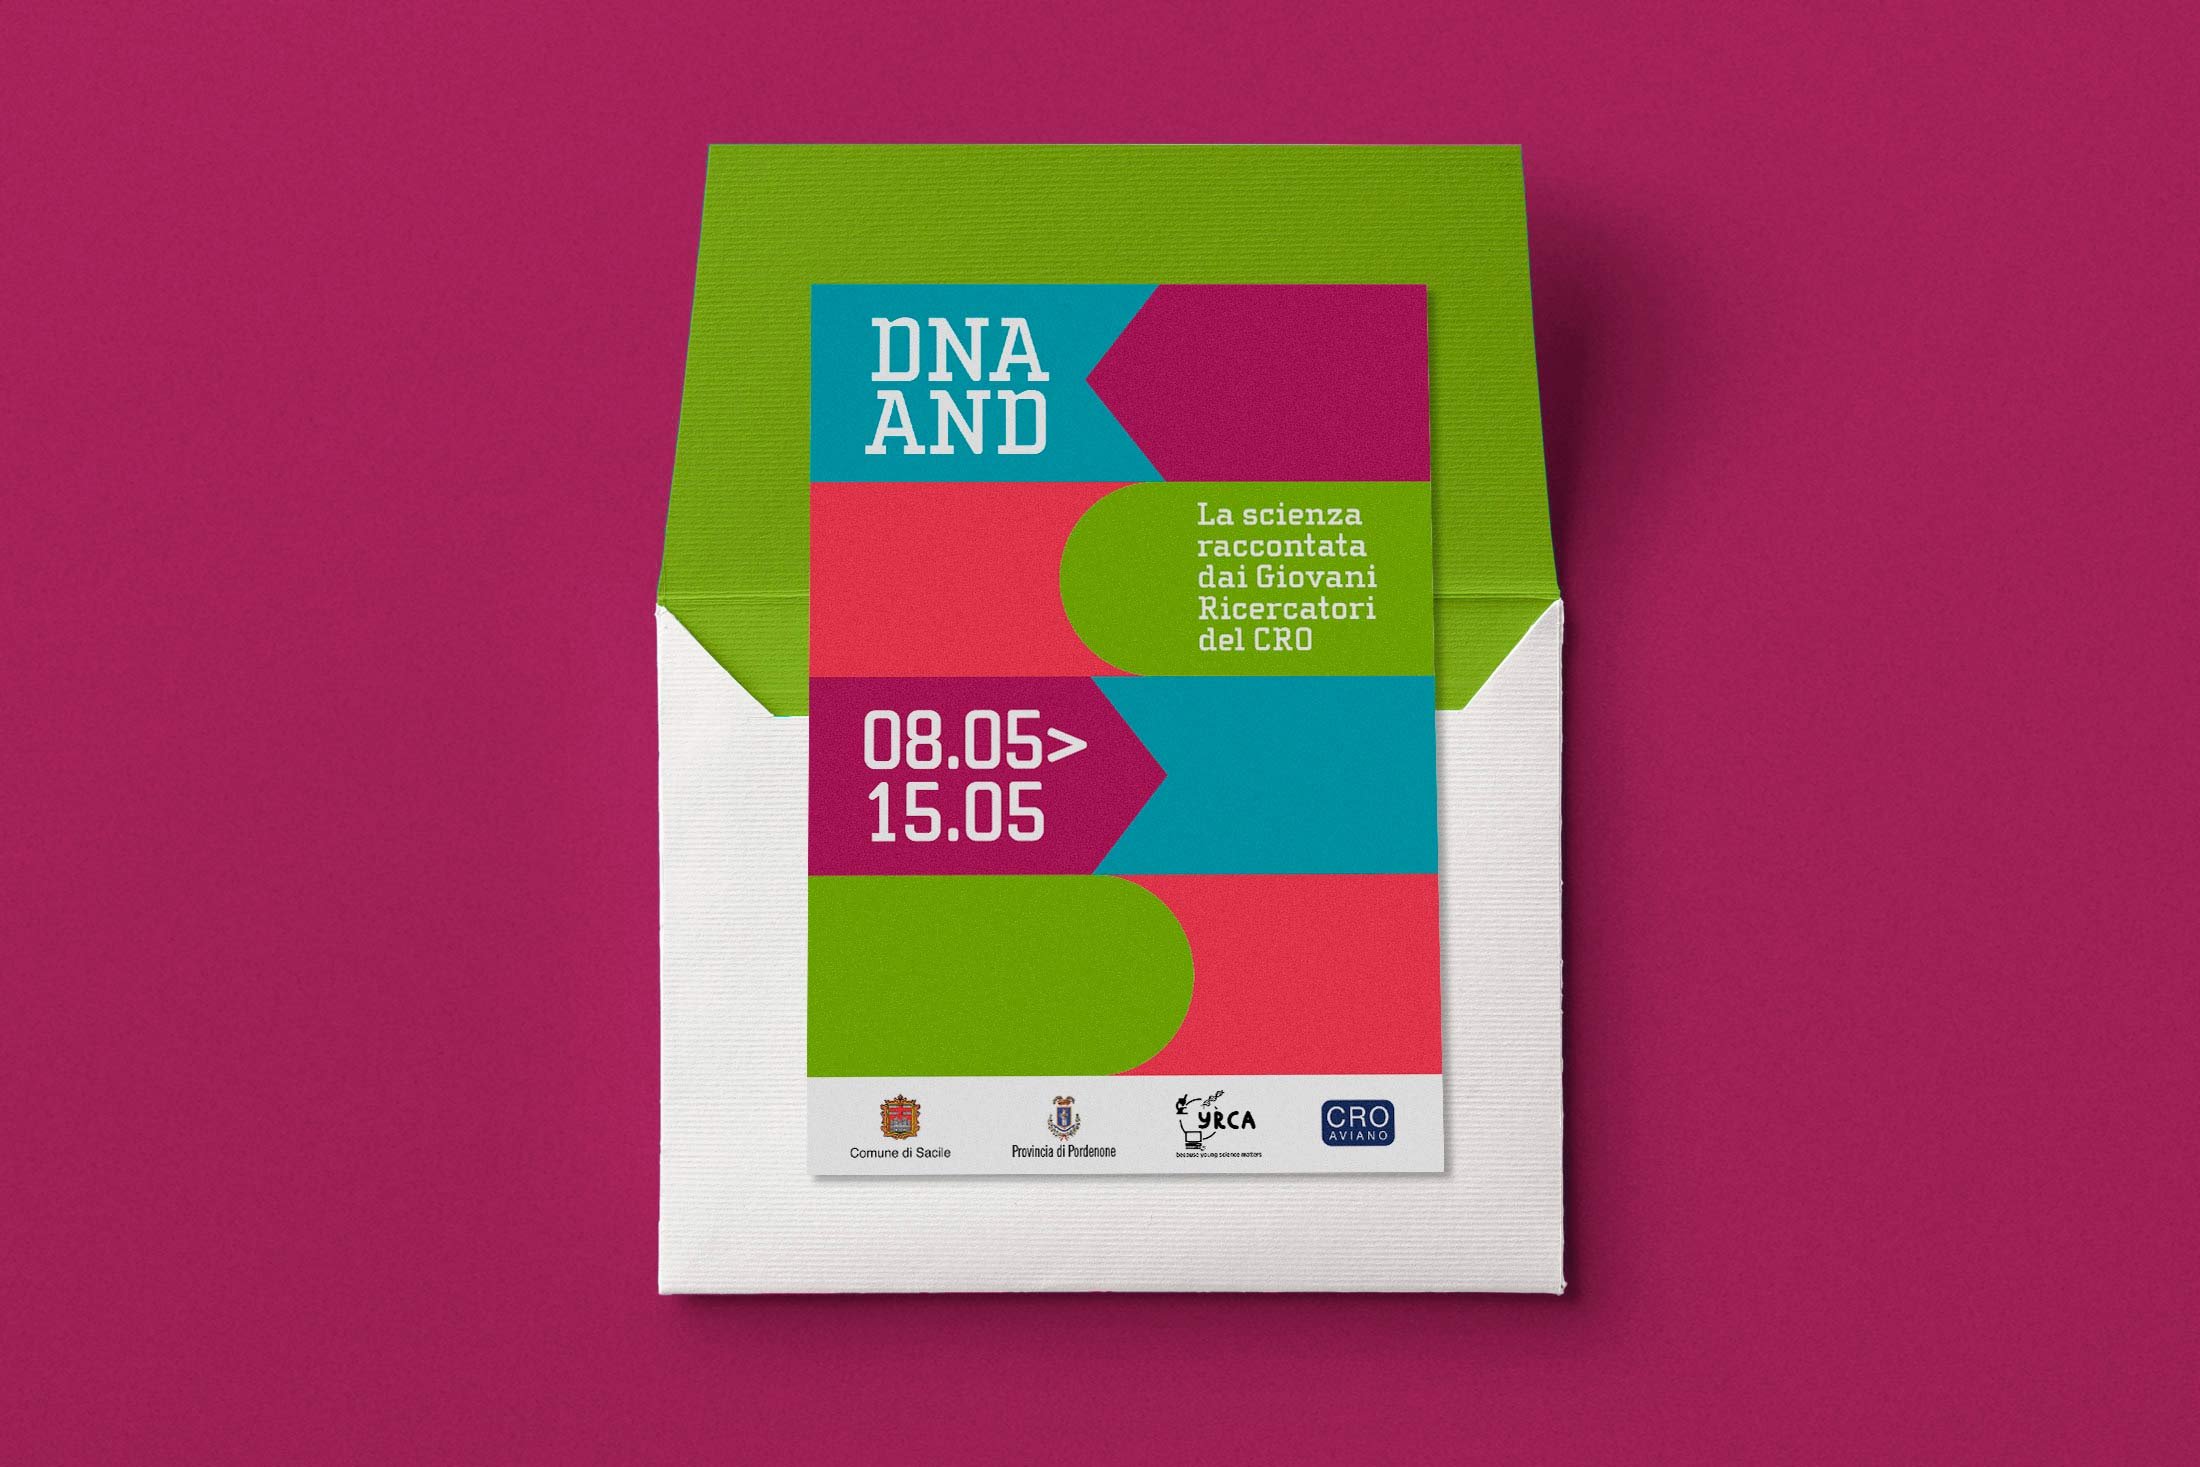 DNA AND - flyer